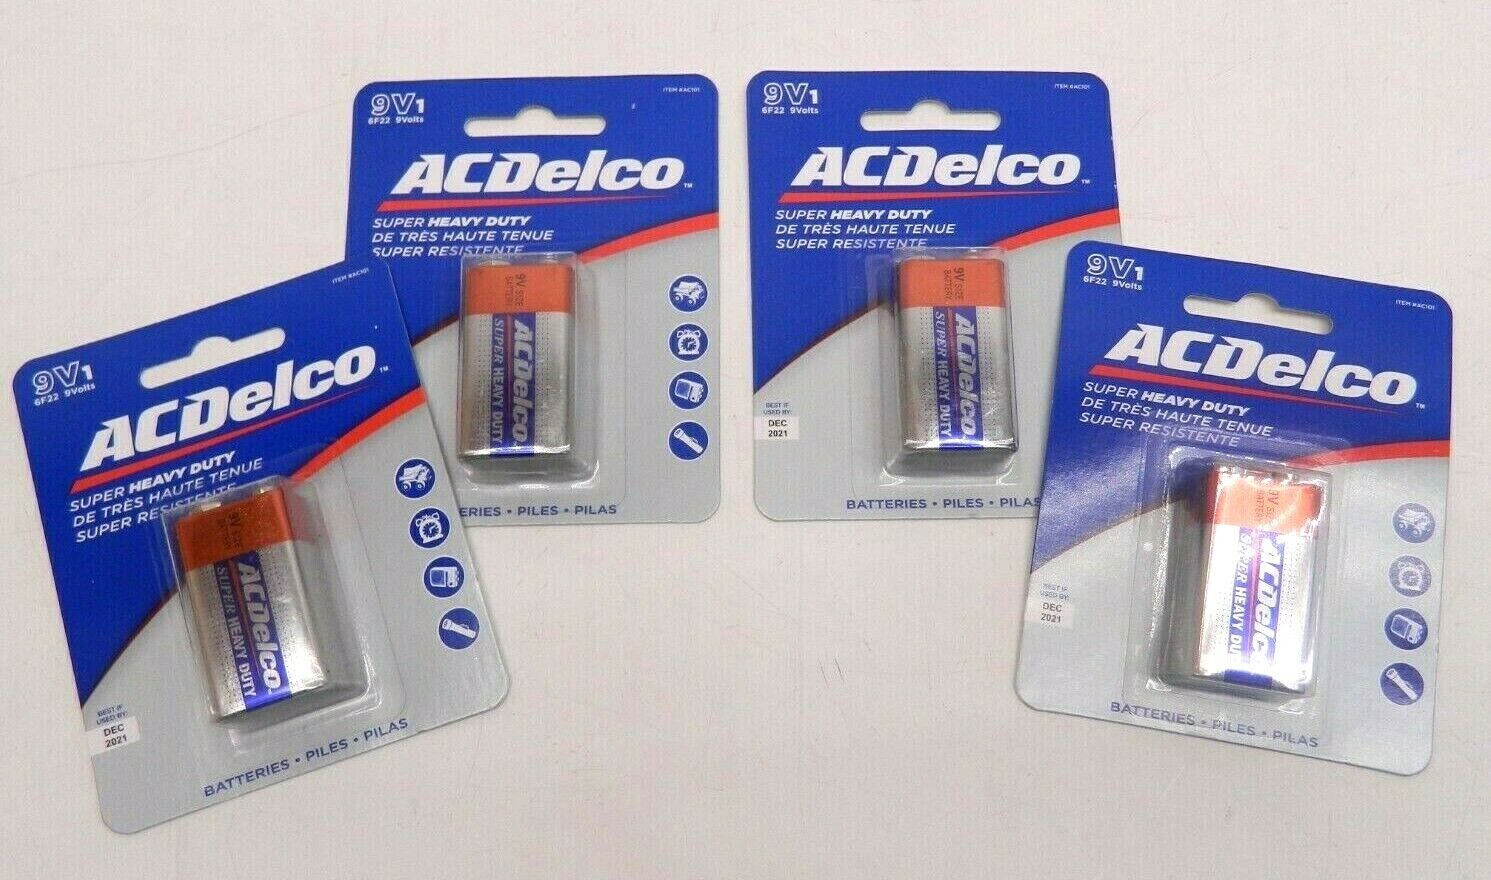 4 Pack Acdelco 9 Volt Batteries Super Heavy Duty Alkaline Battery, 4 Count Pack